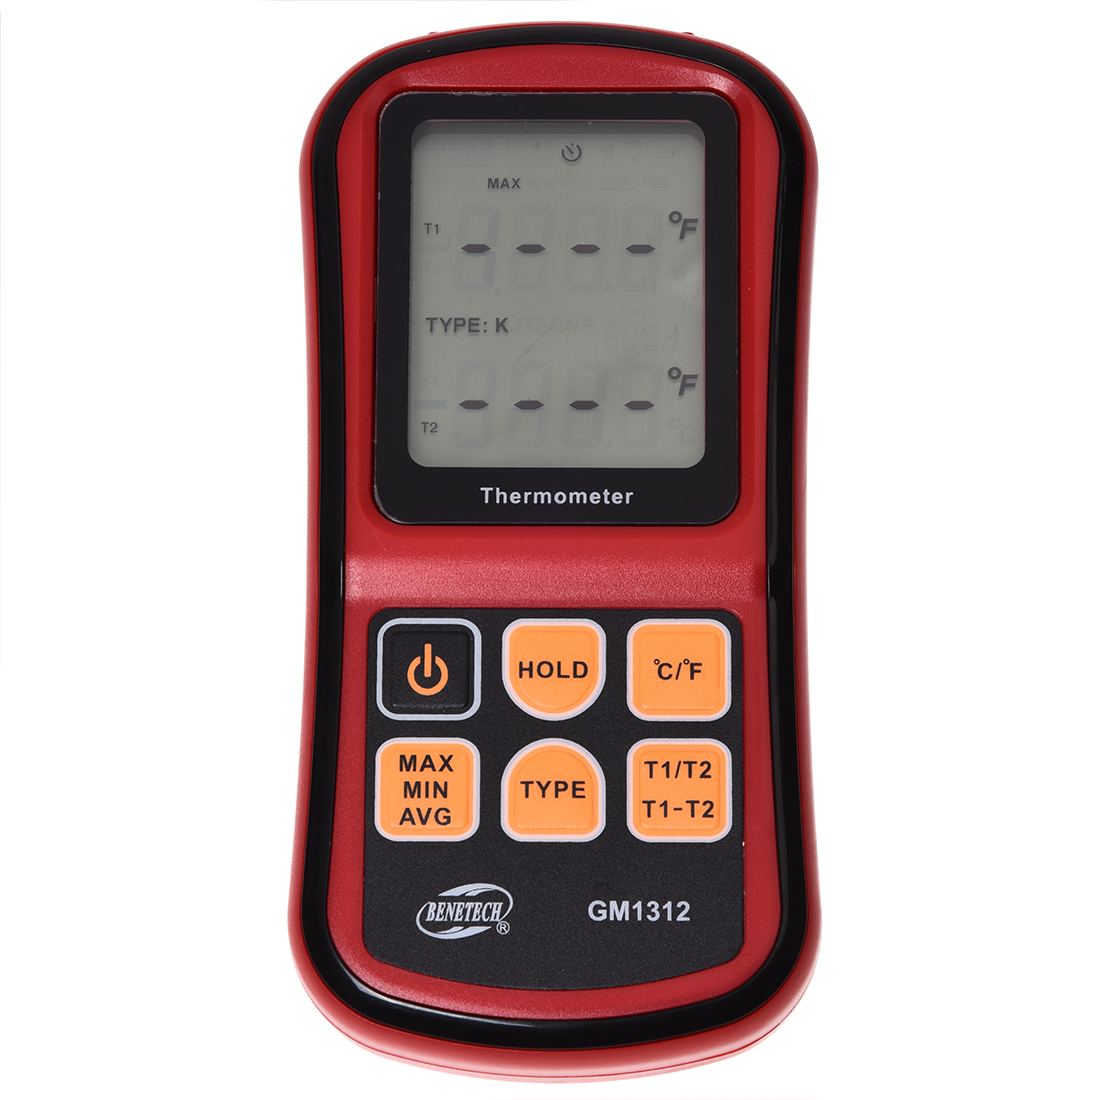 BENETECH Digital Thermometer Dual-channel Thermometer Tester Thermocouple K / J / T / E / R / S / N-LCD Backlight Red